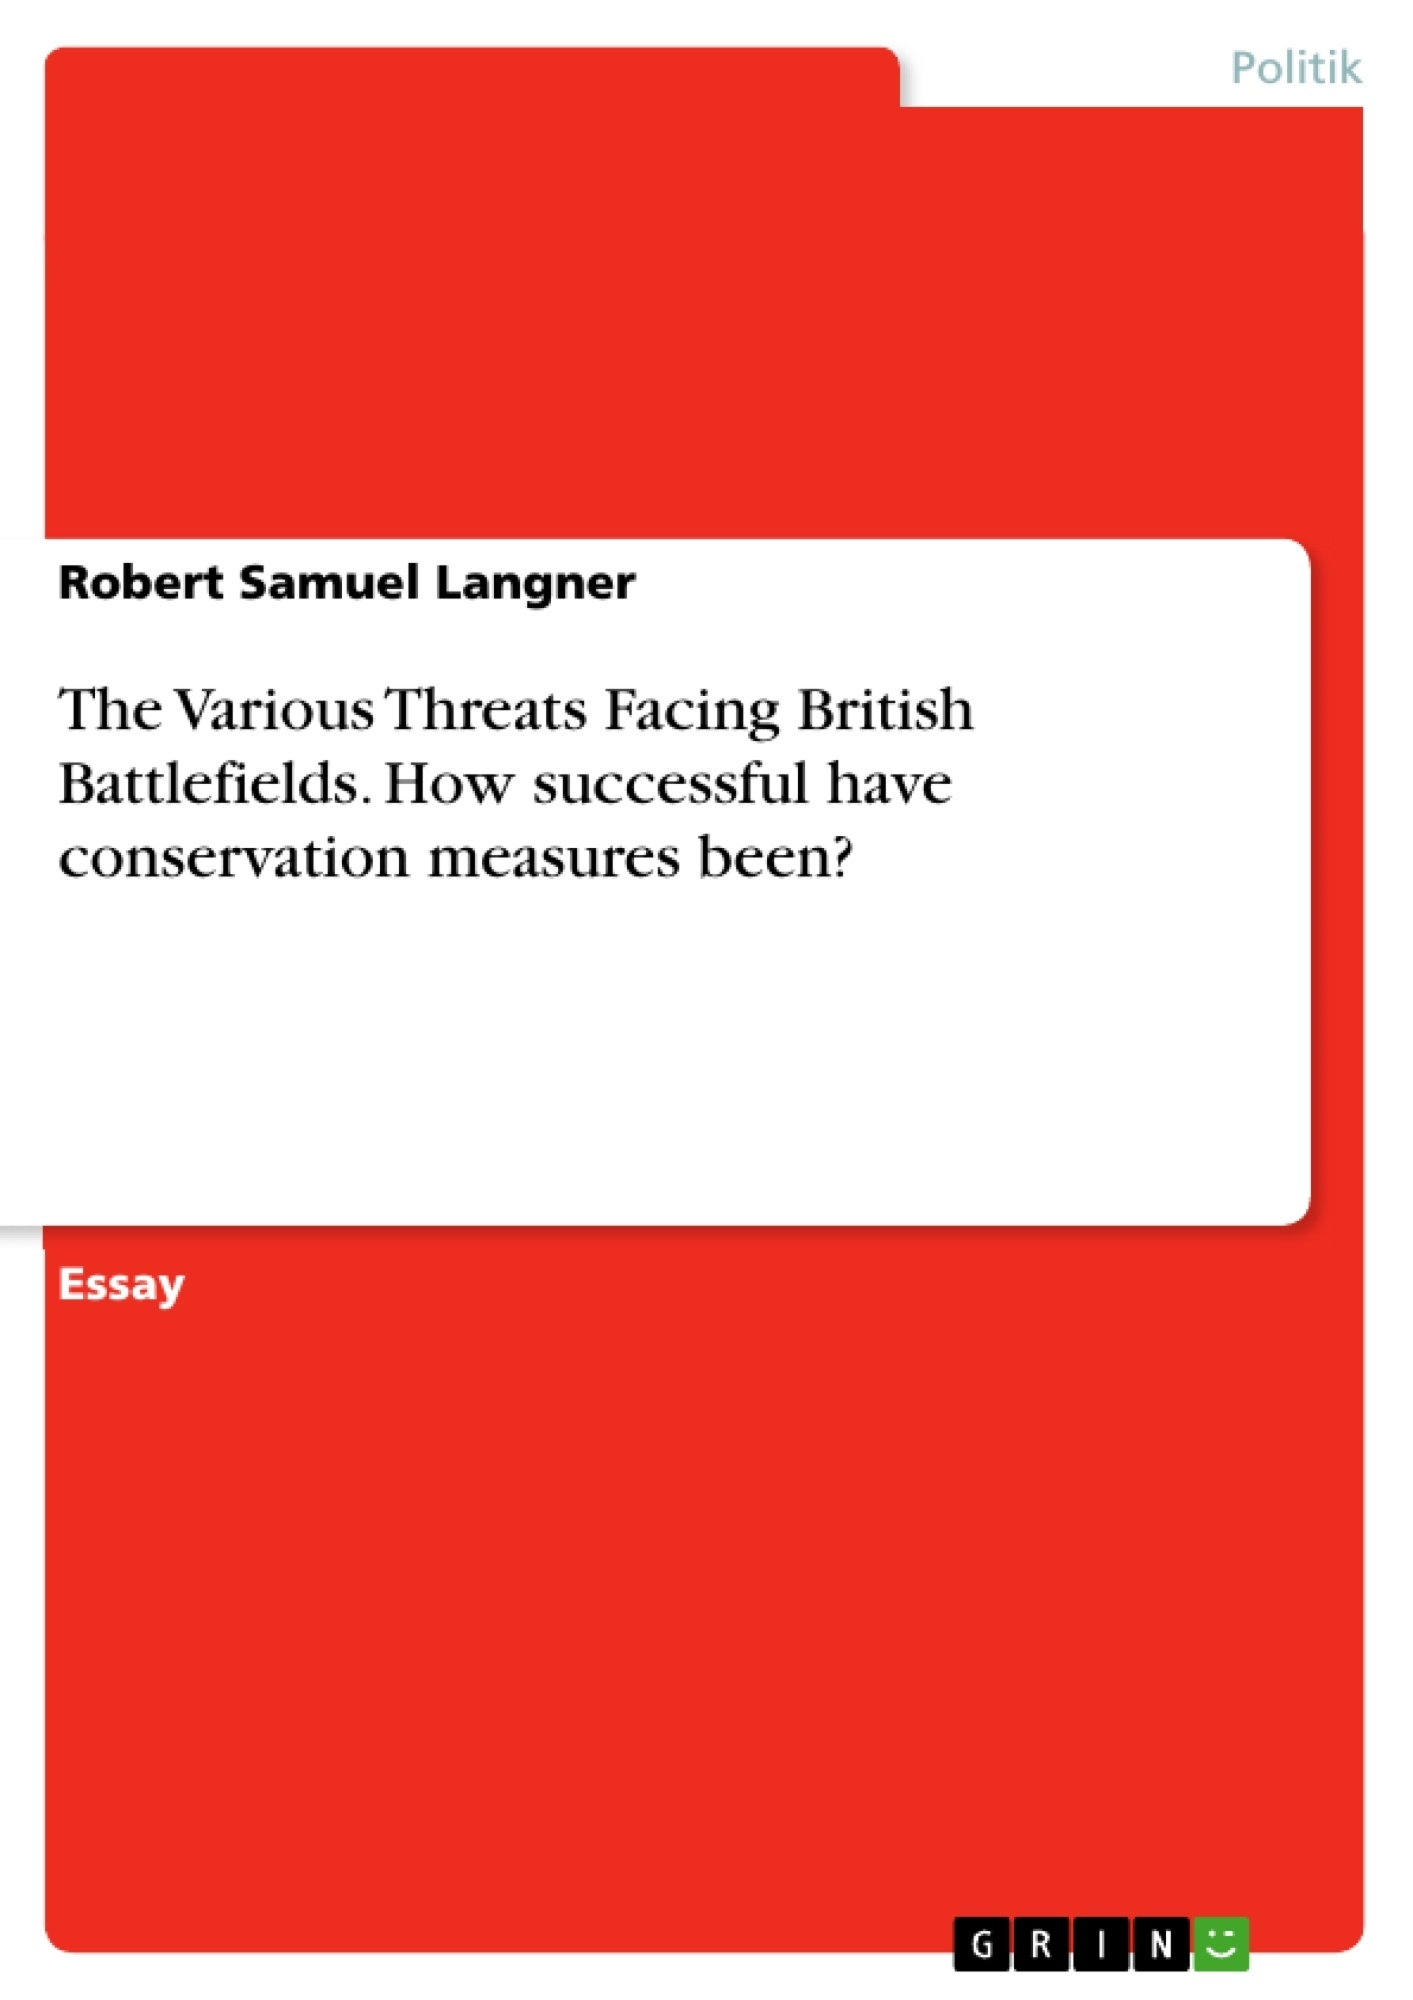 Titel: The Various Threats Facing British Battlefields. How successful have conservation measures been?